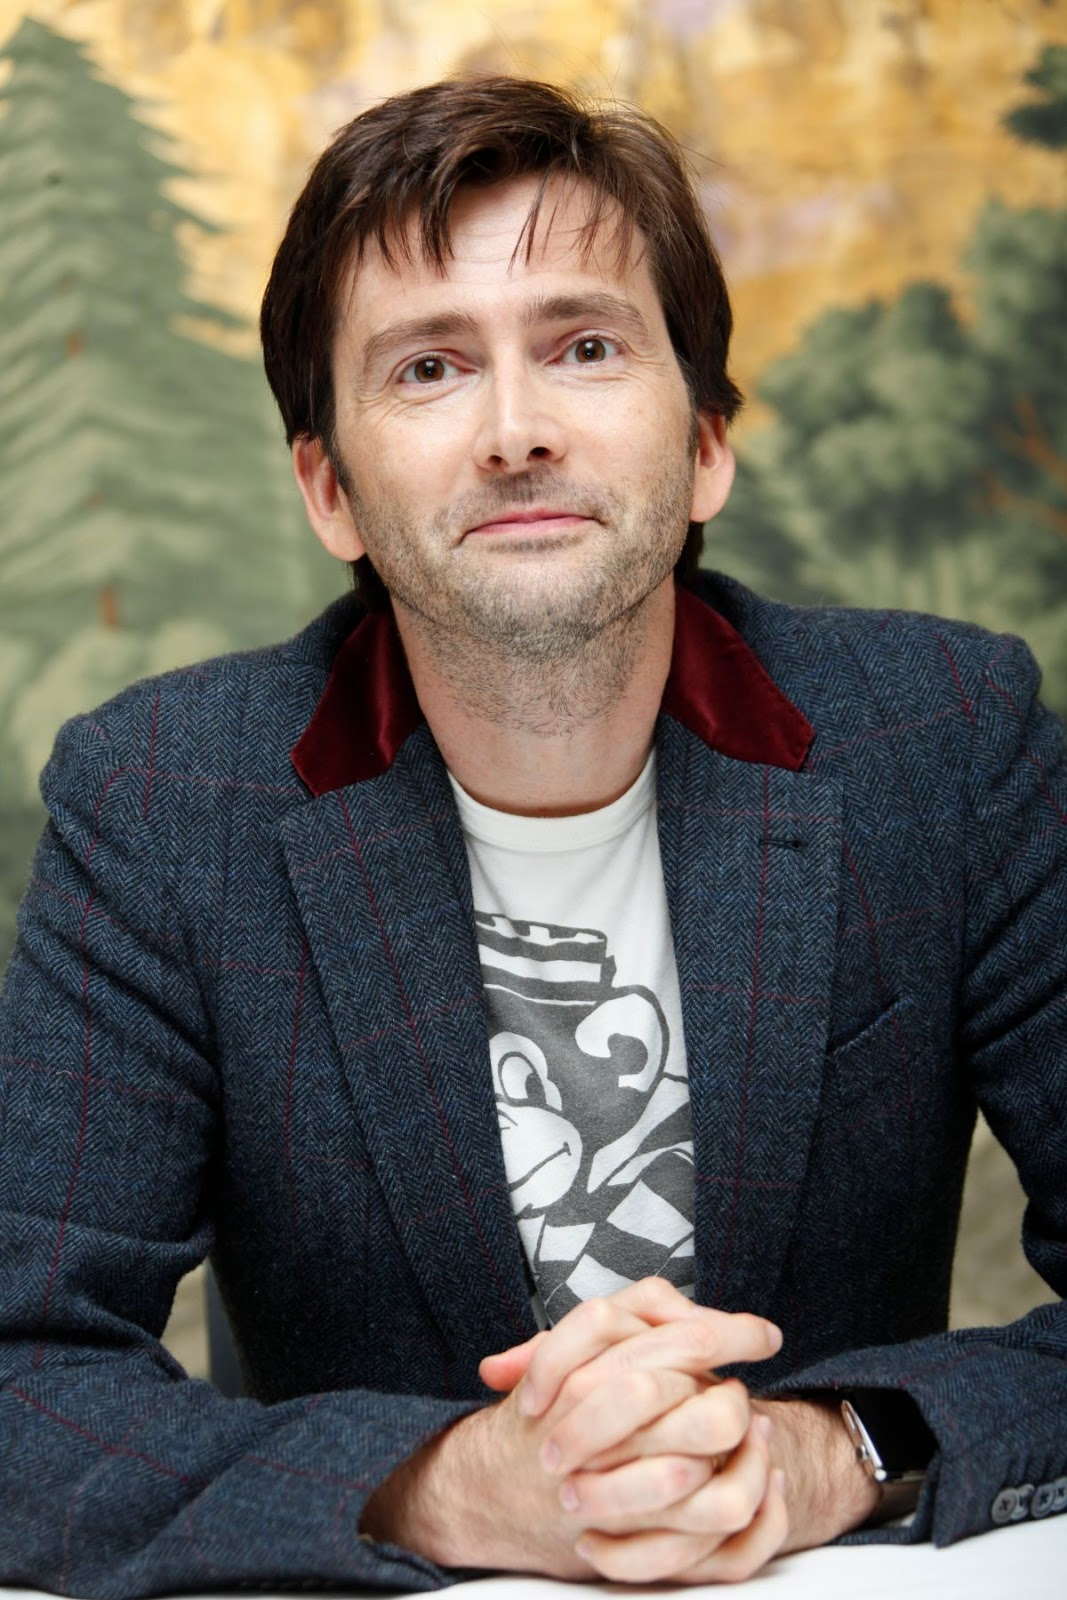 Steal his style how to get david tennant 39 s jessica jones for Paul smith doctor who shirt